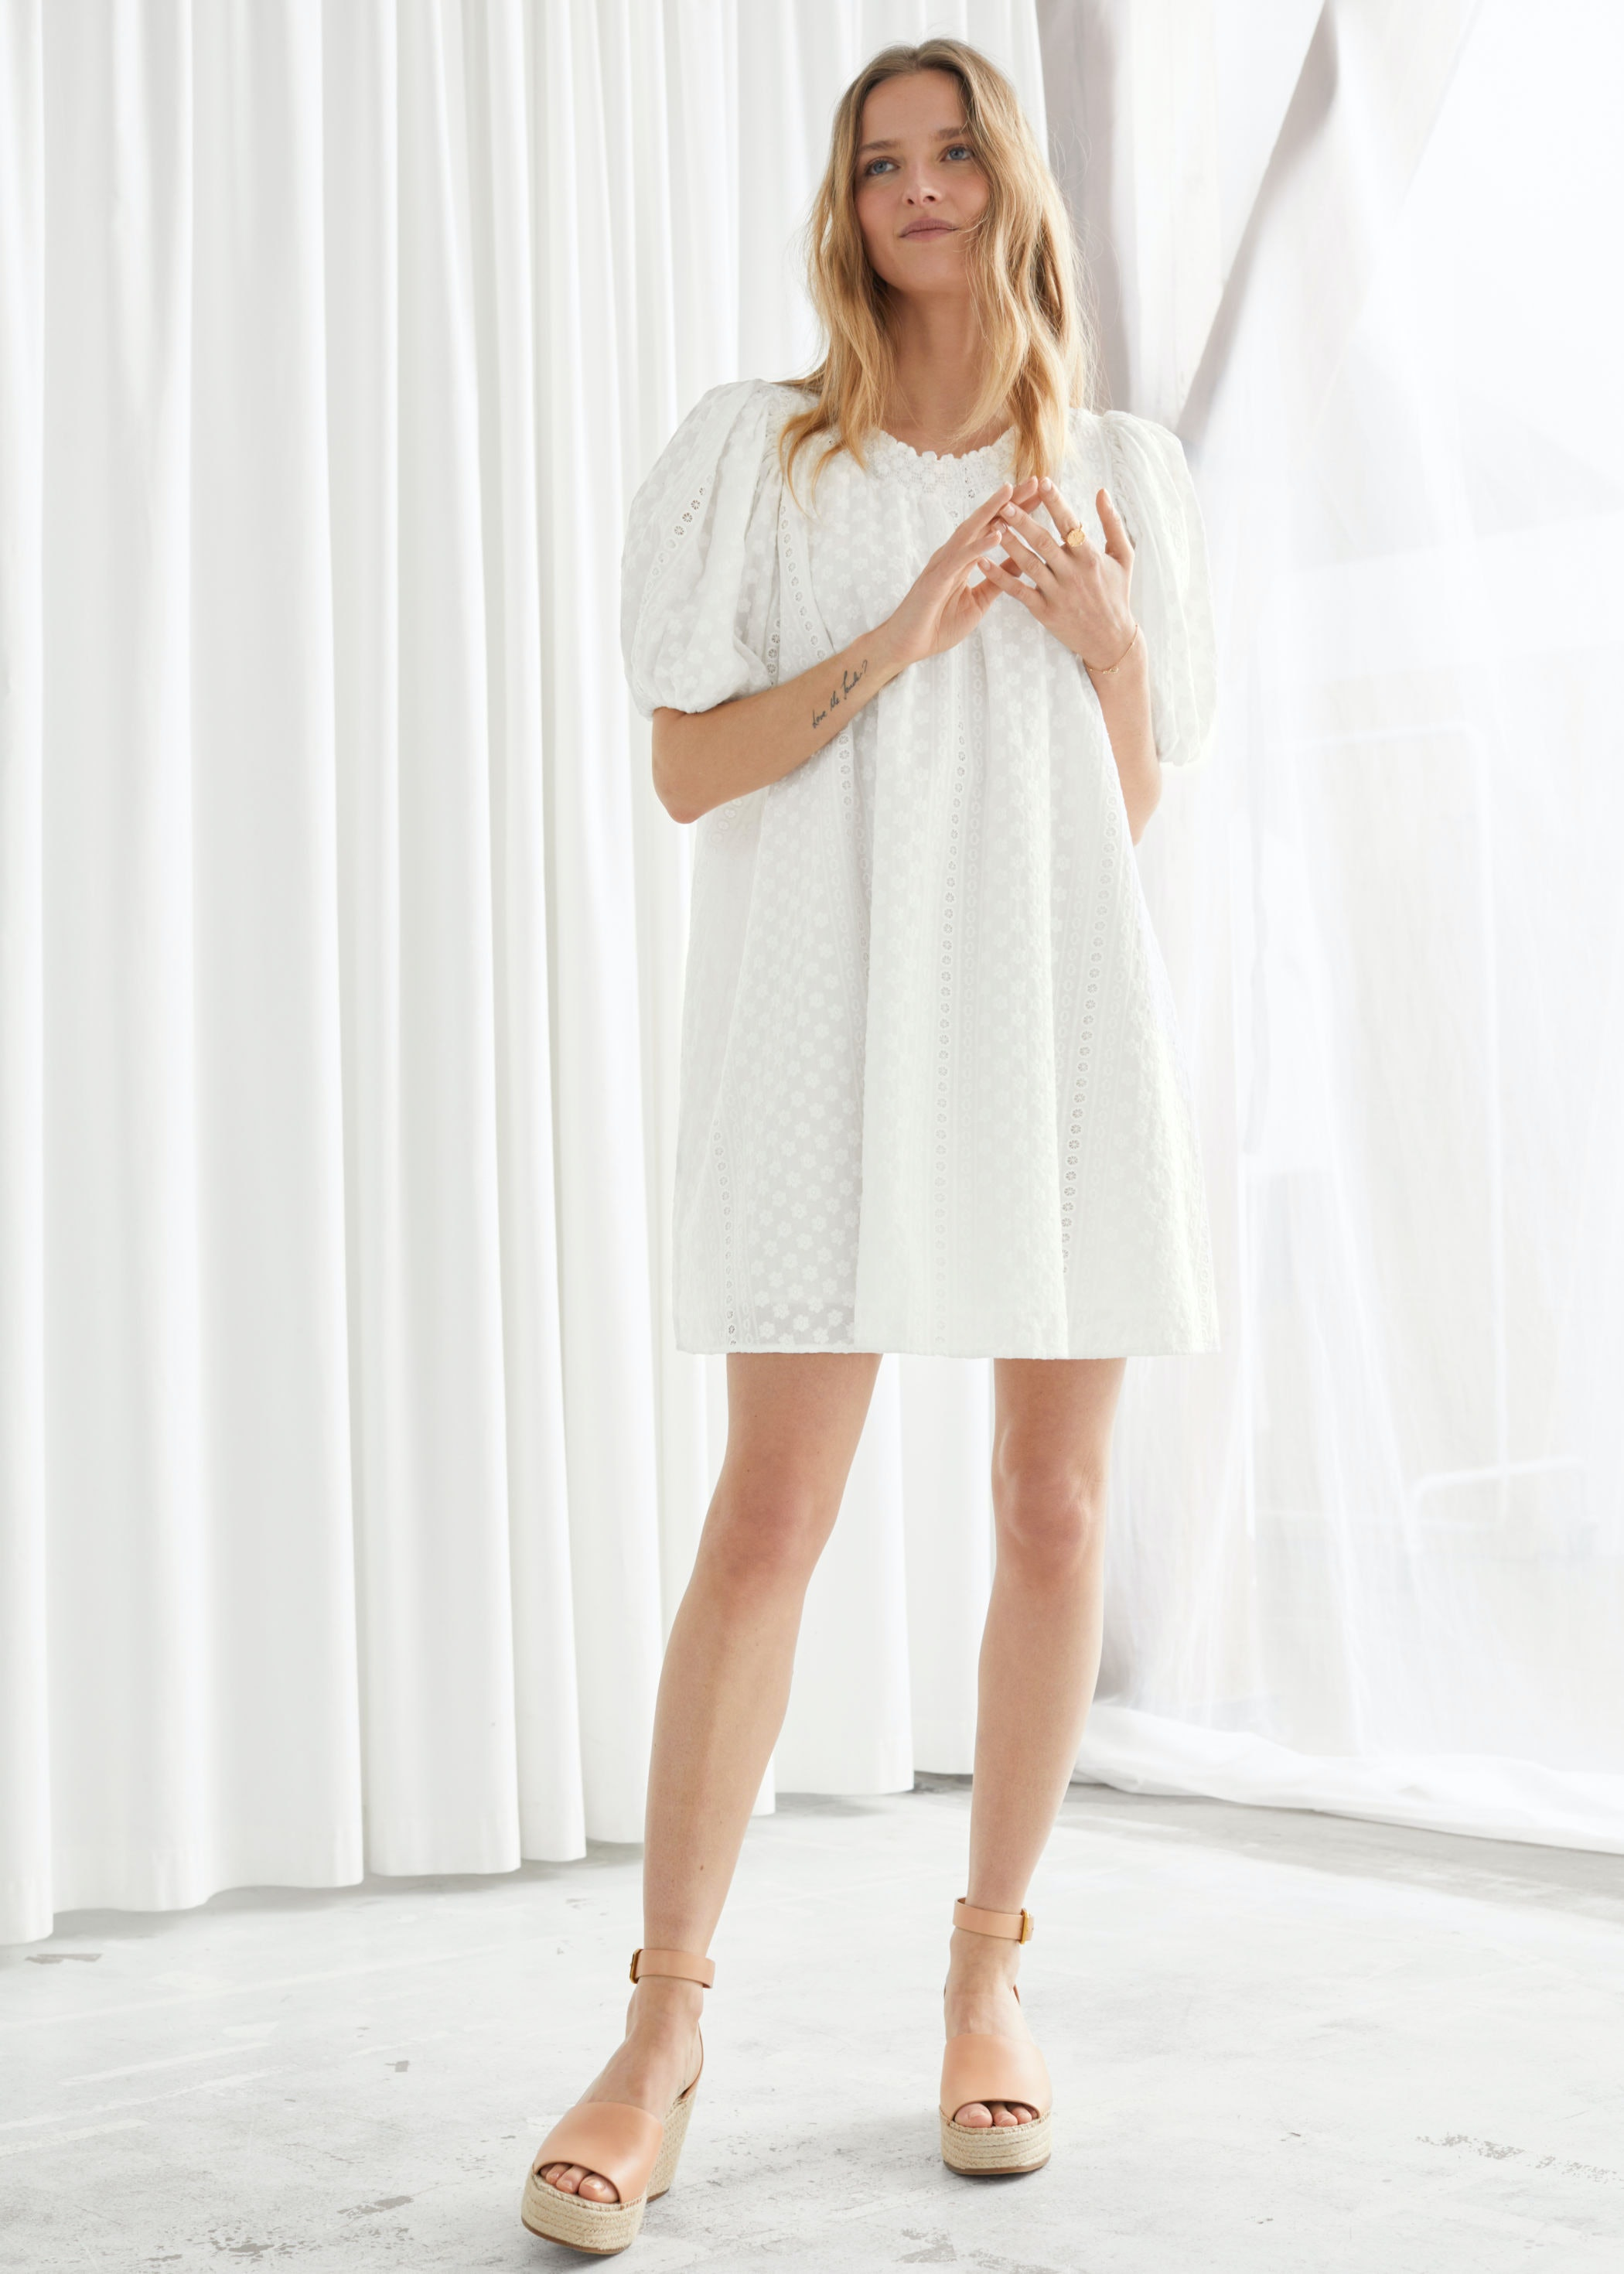 Other Stories Sustainable Summer Collection Has The Romantic Dresses You Ll Want To Live In All Season